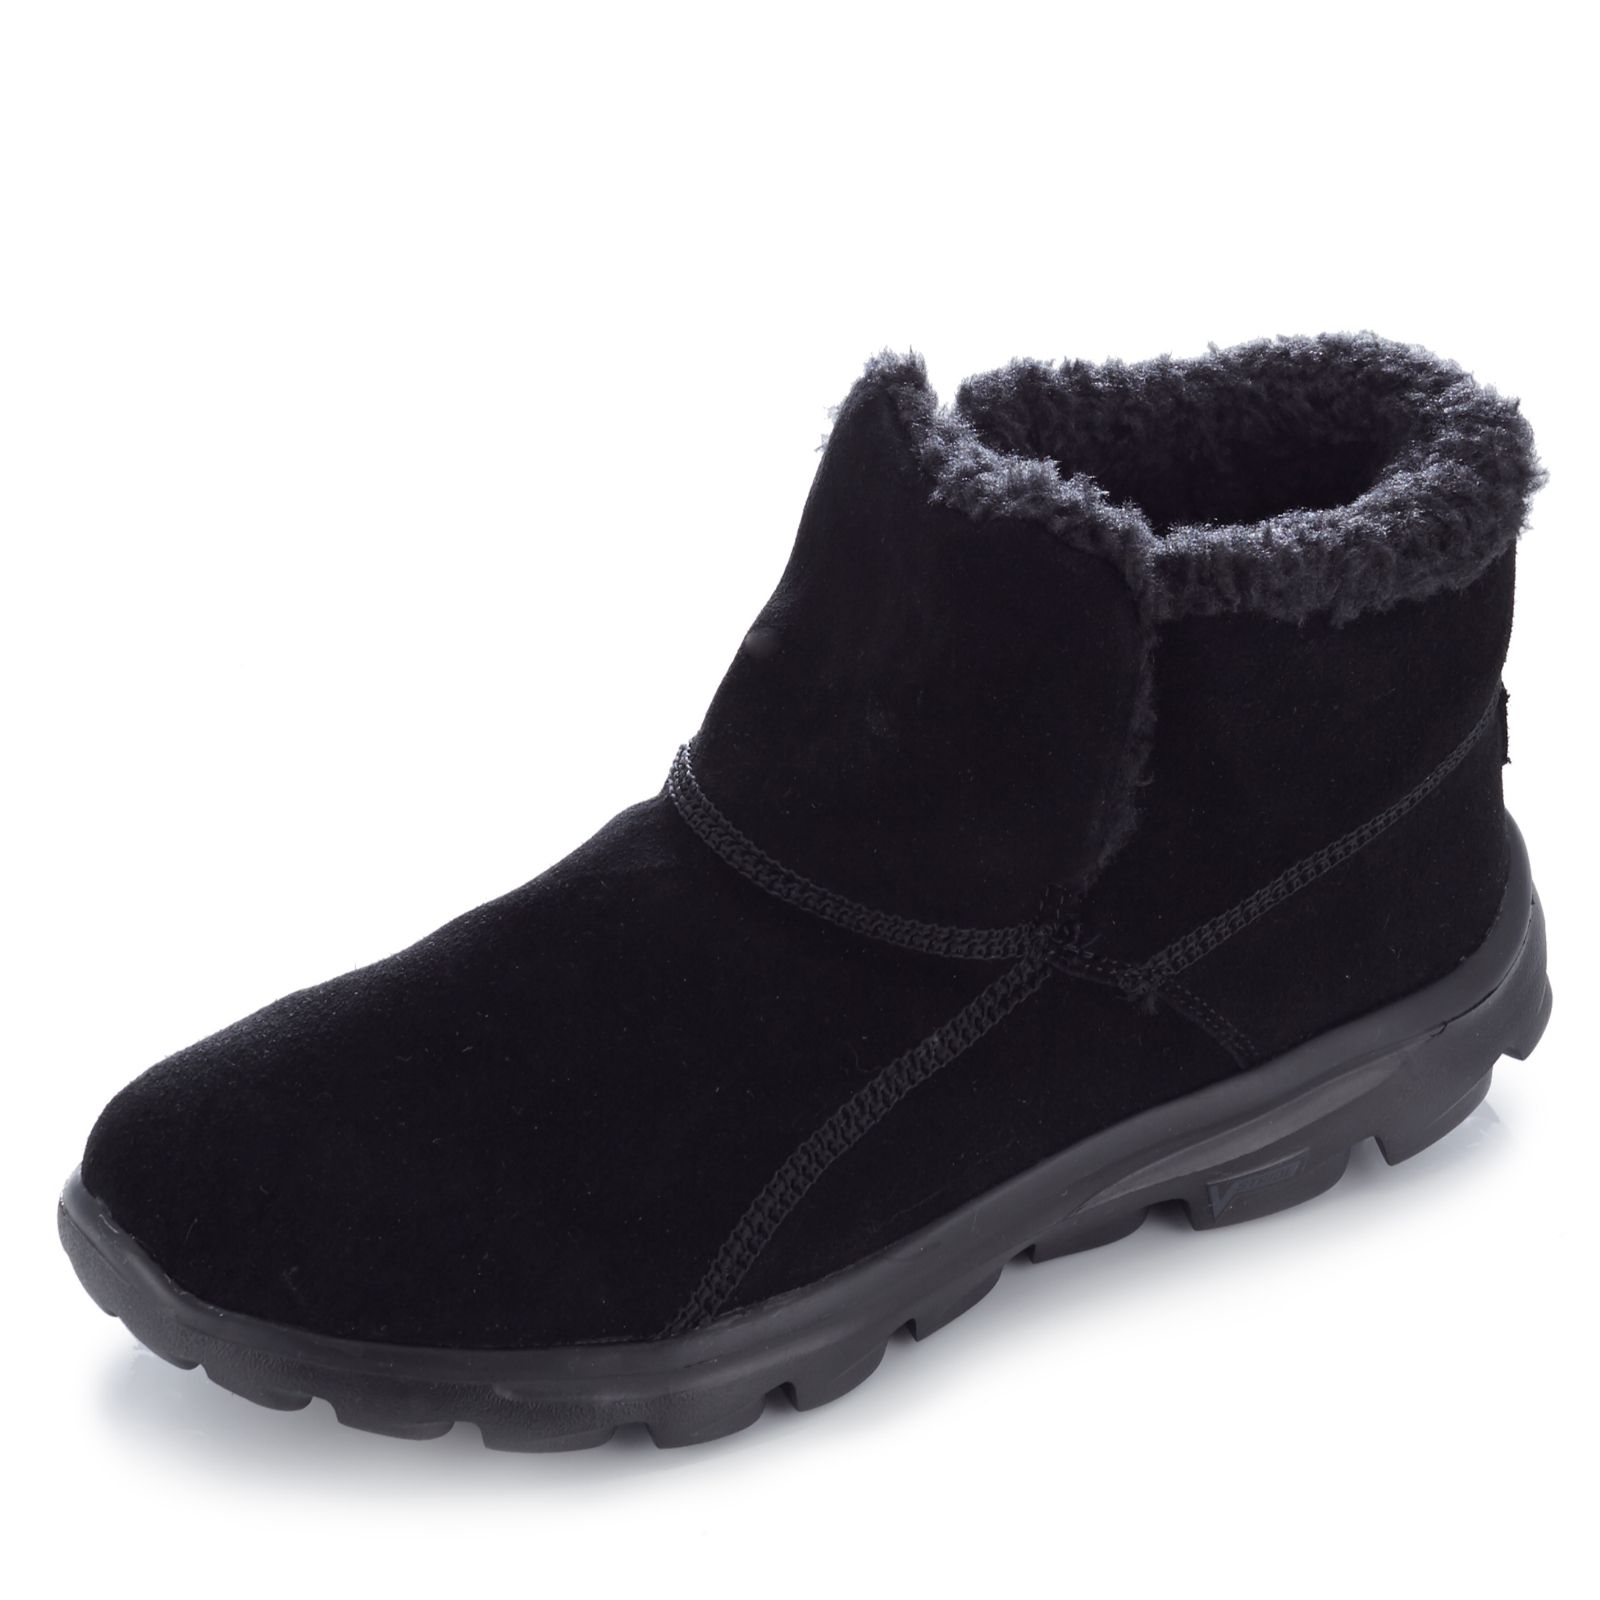 sketchers black boots. skechers on the go chugga suede ankle boot with memory foam - page 1 qvc uk sketchers black boots